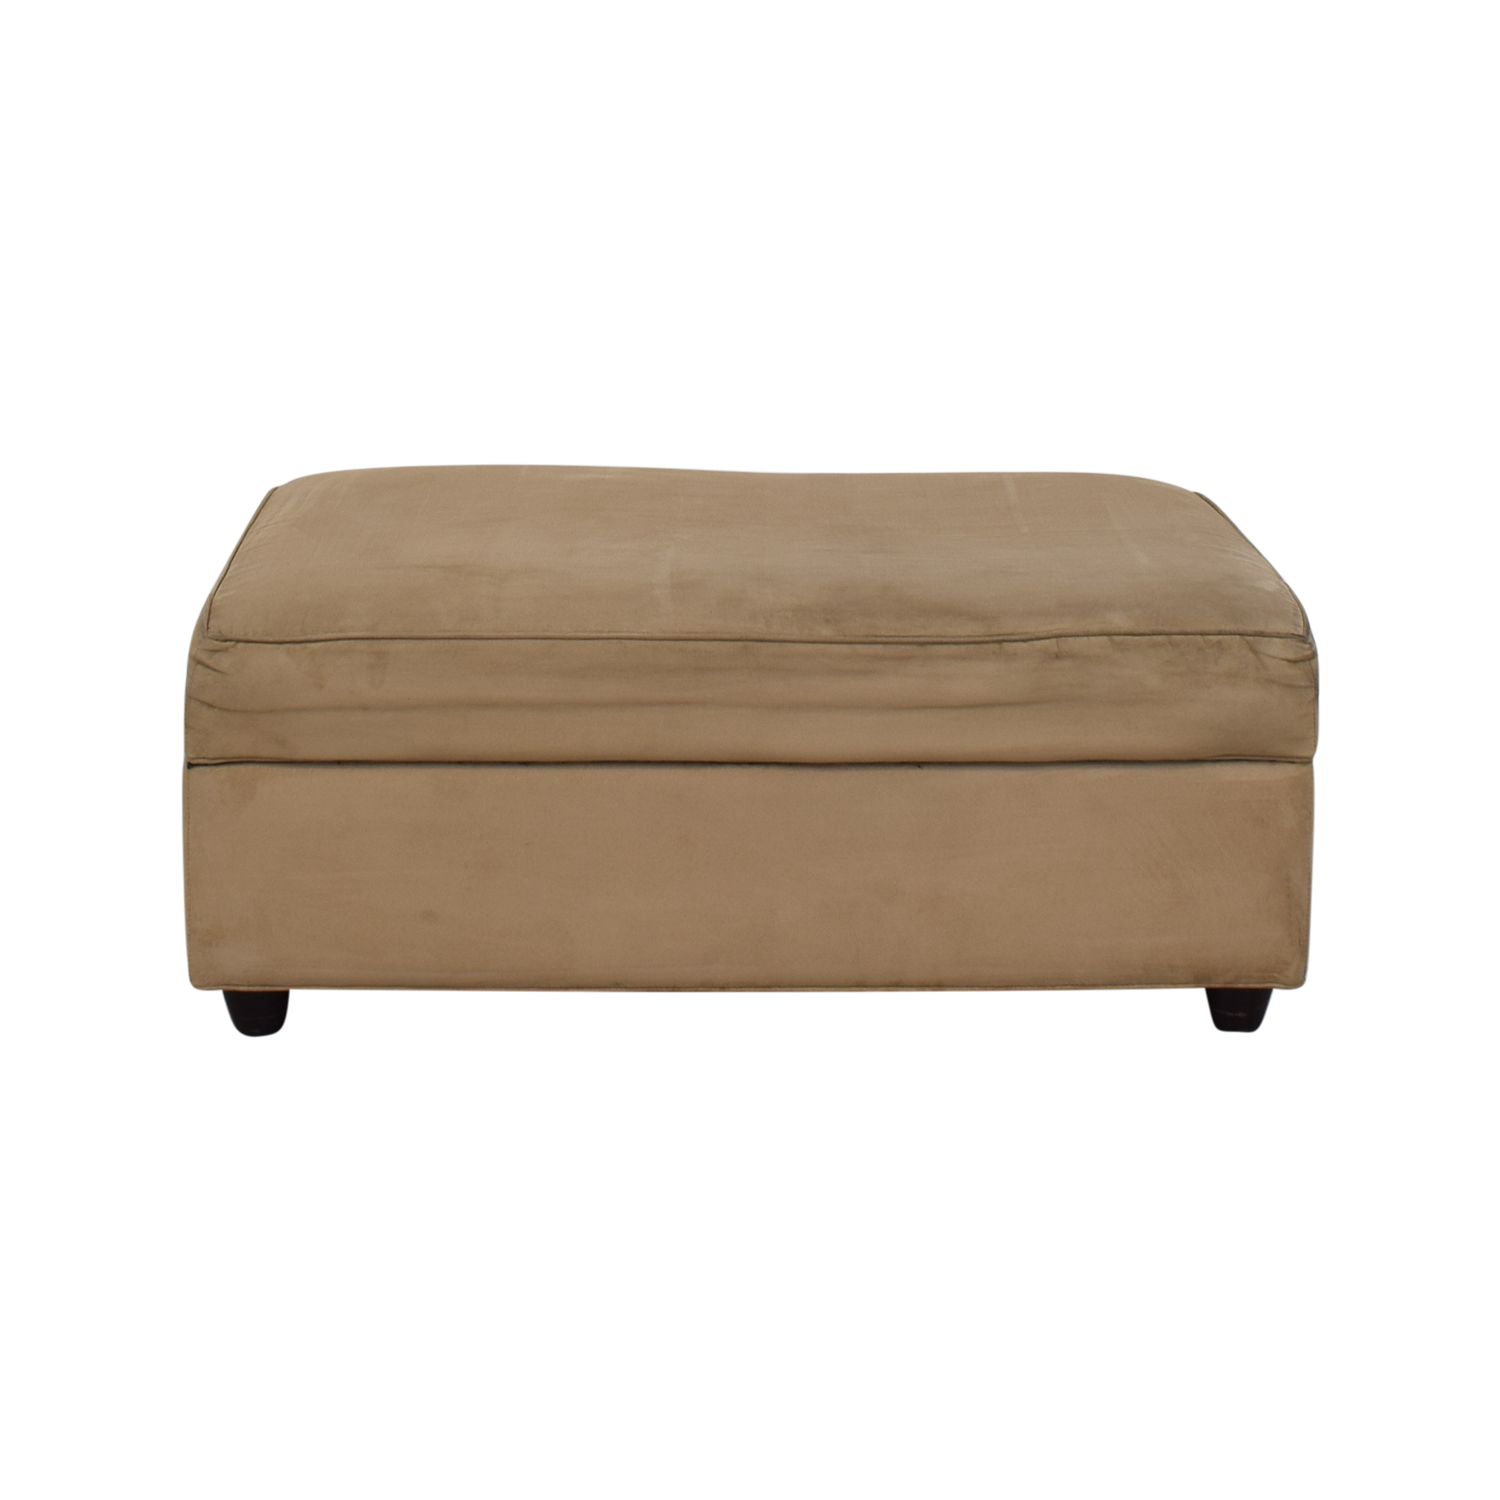 Crate & Barrel Crate & Barrel Storage Ottoman coupon